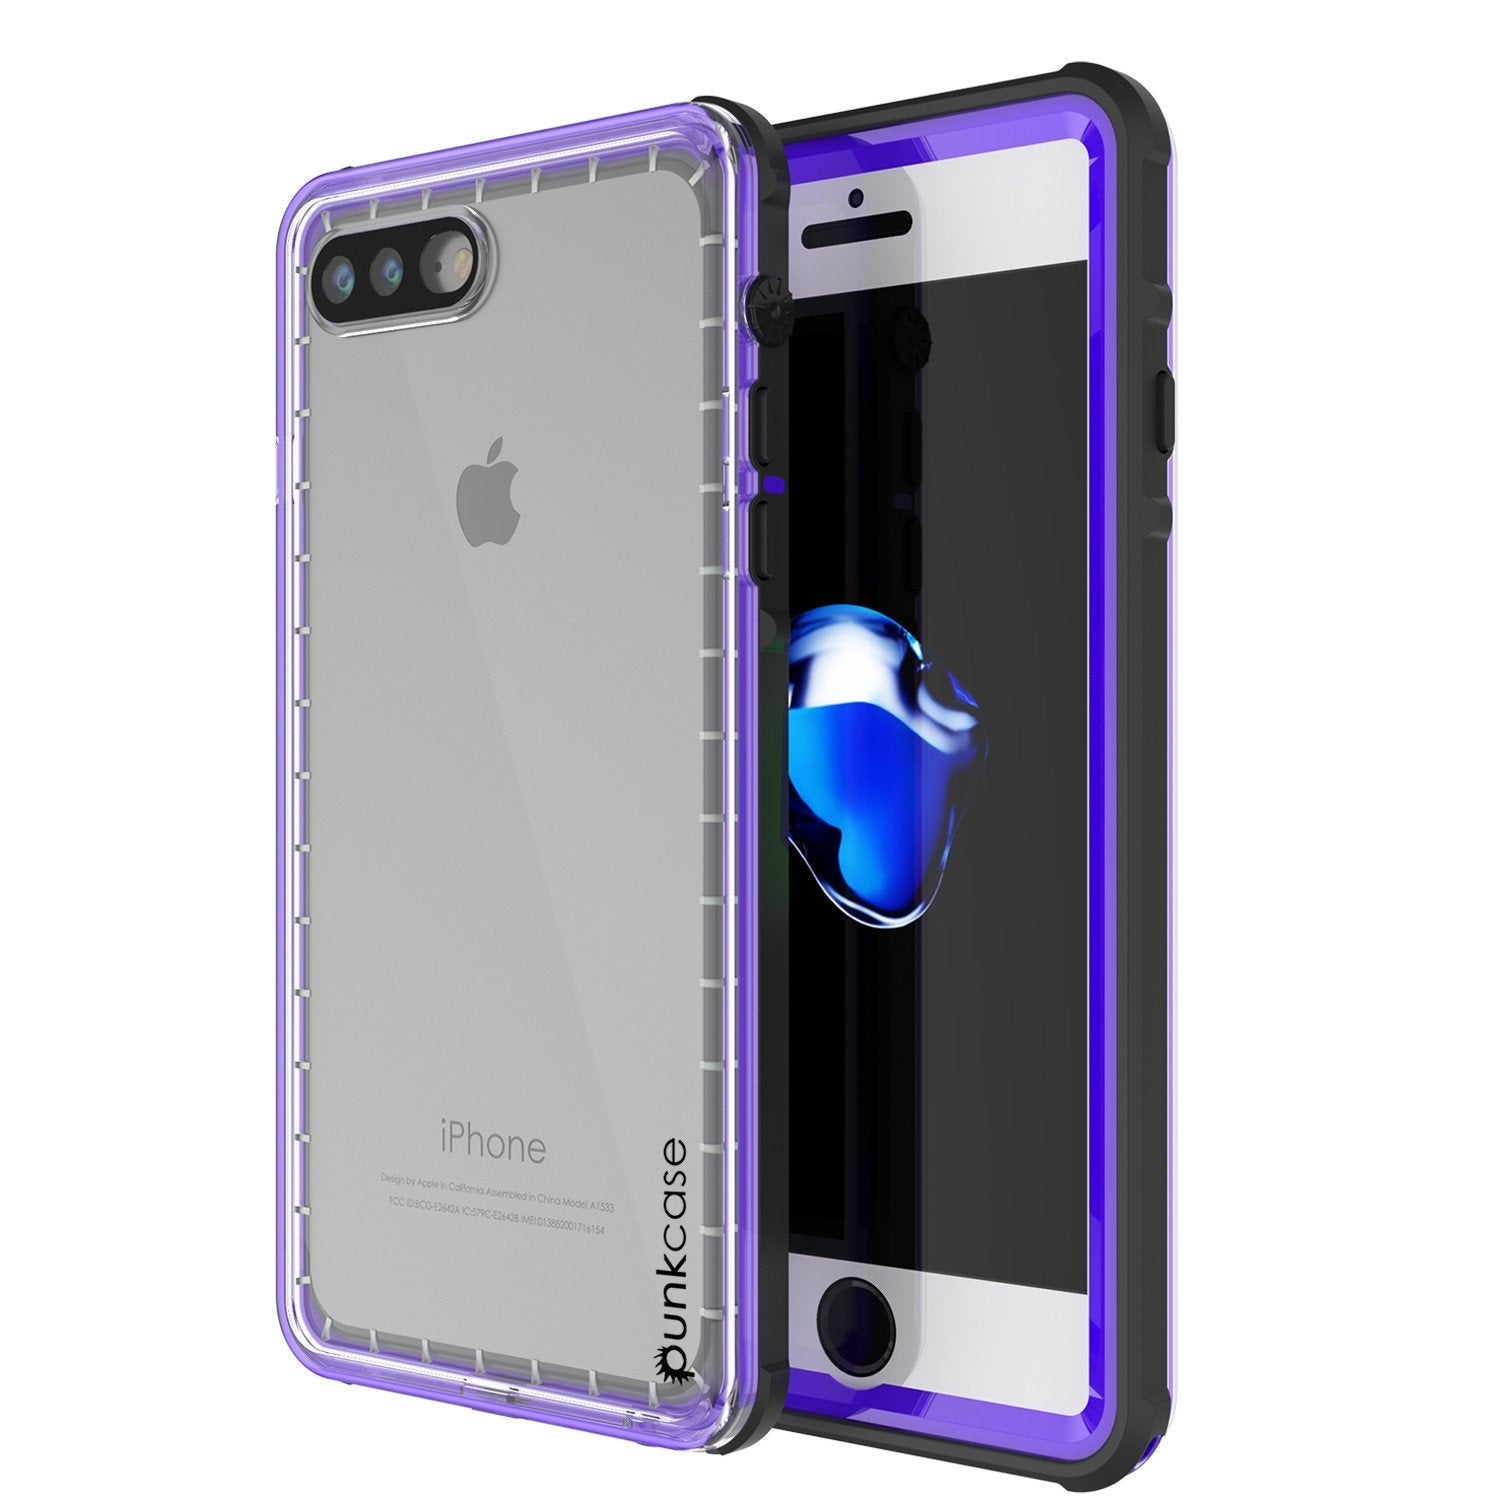 new style e370a 2b1f9 iPhone 8+ Plus Waterproof Case, PUNKcase CRYSTAL Purple W/ Attached Screen  Protector | Warranty